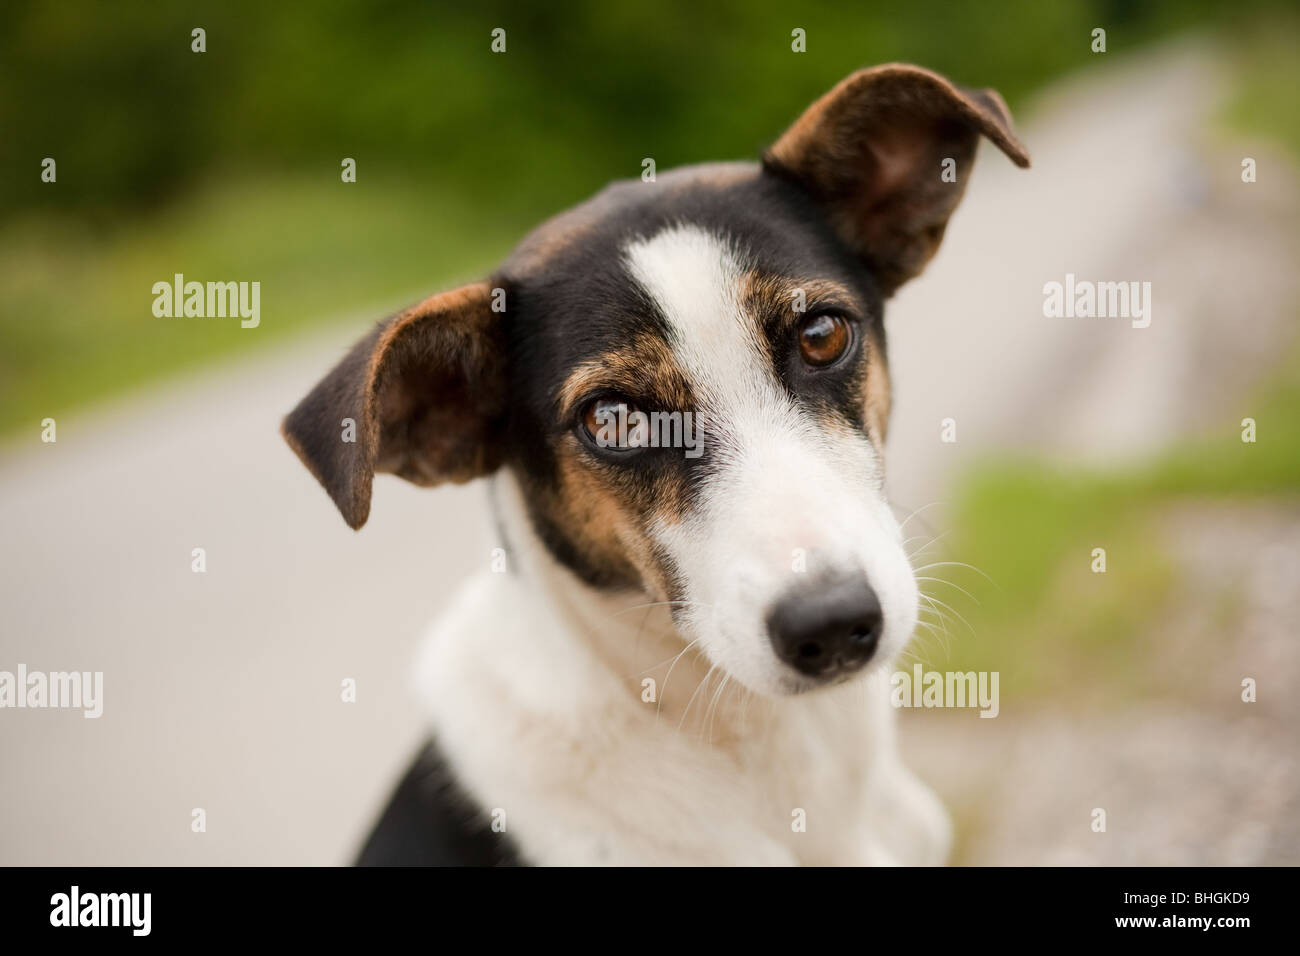 Portrait of an adorable little dog outdoor - Stock Image